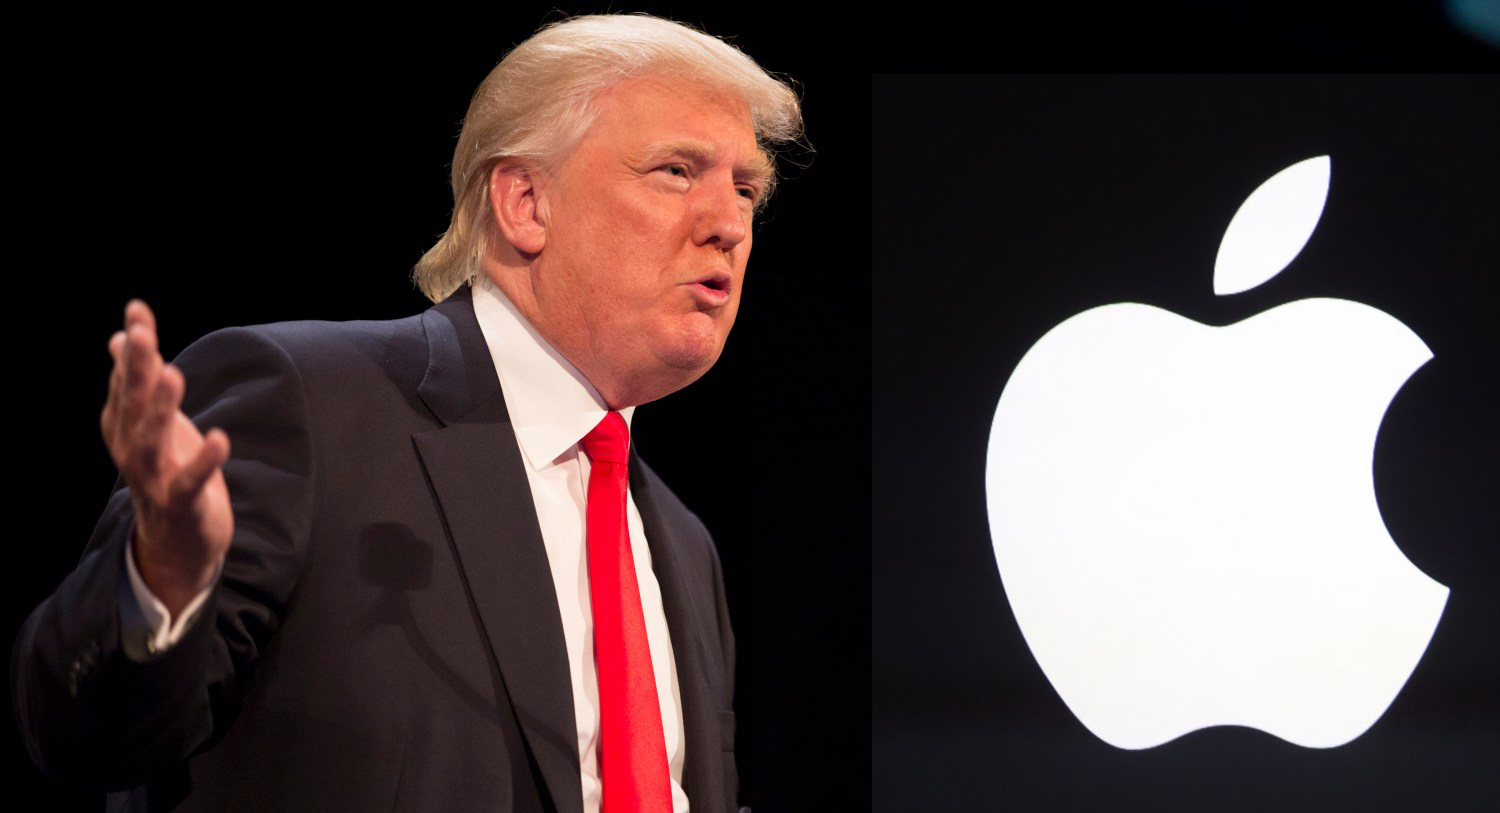 Donald-Trump-opina-sobre-Apple-copia